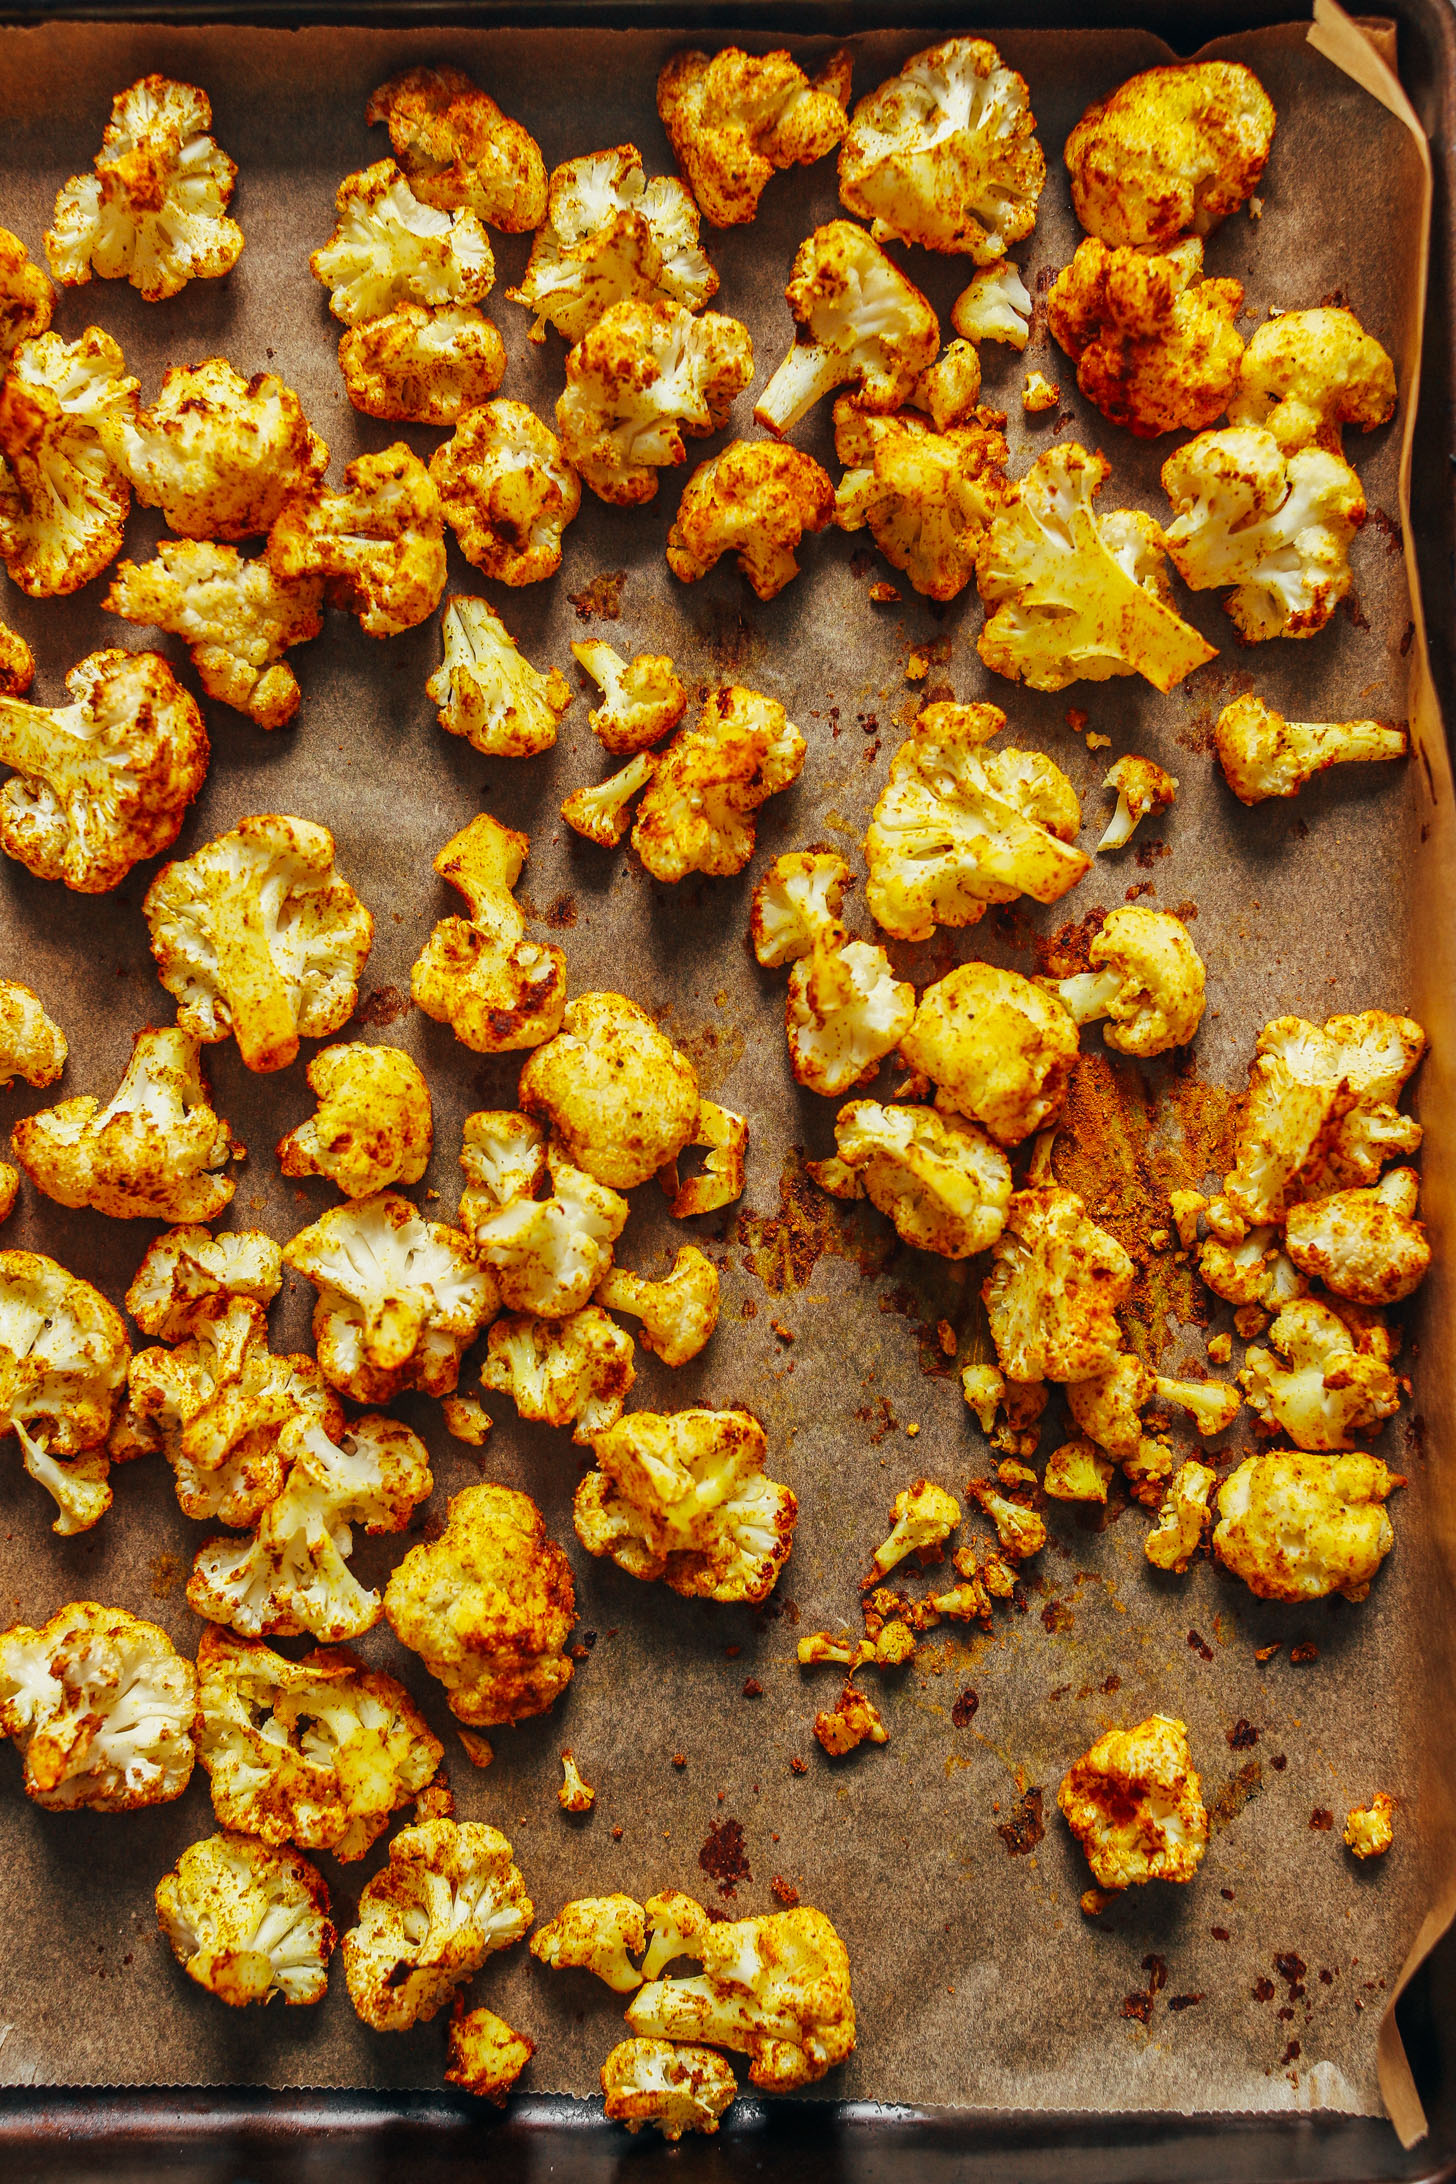 Parchment-lined baking sheet with Curry Roasted Cauliflower fresh from the oven